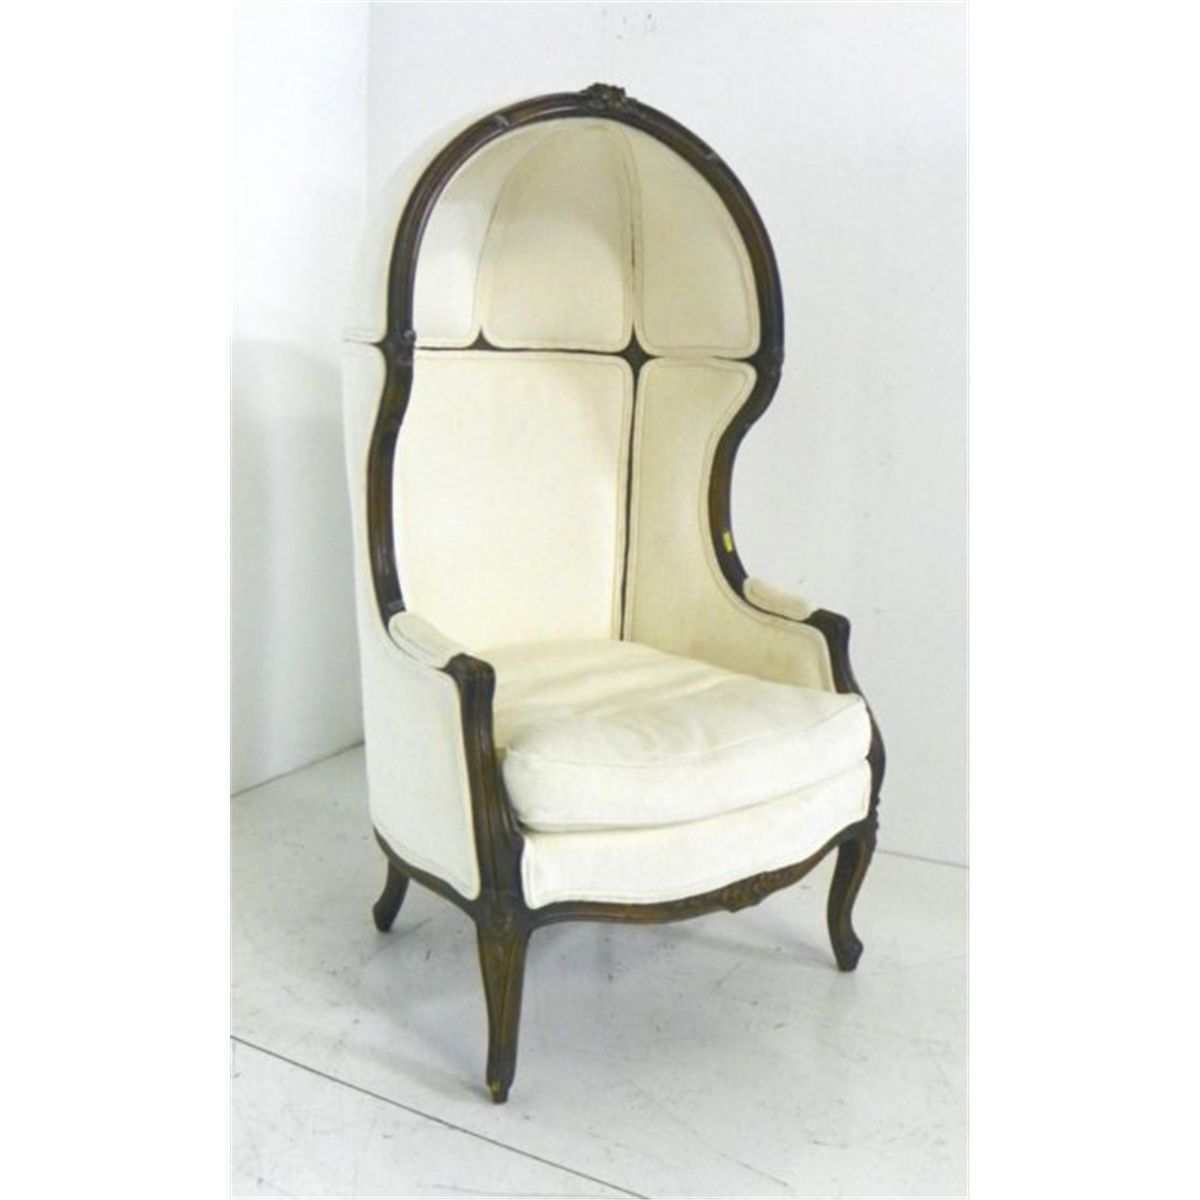 Hooded Chair For The Home Furniture Furniture Styles